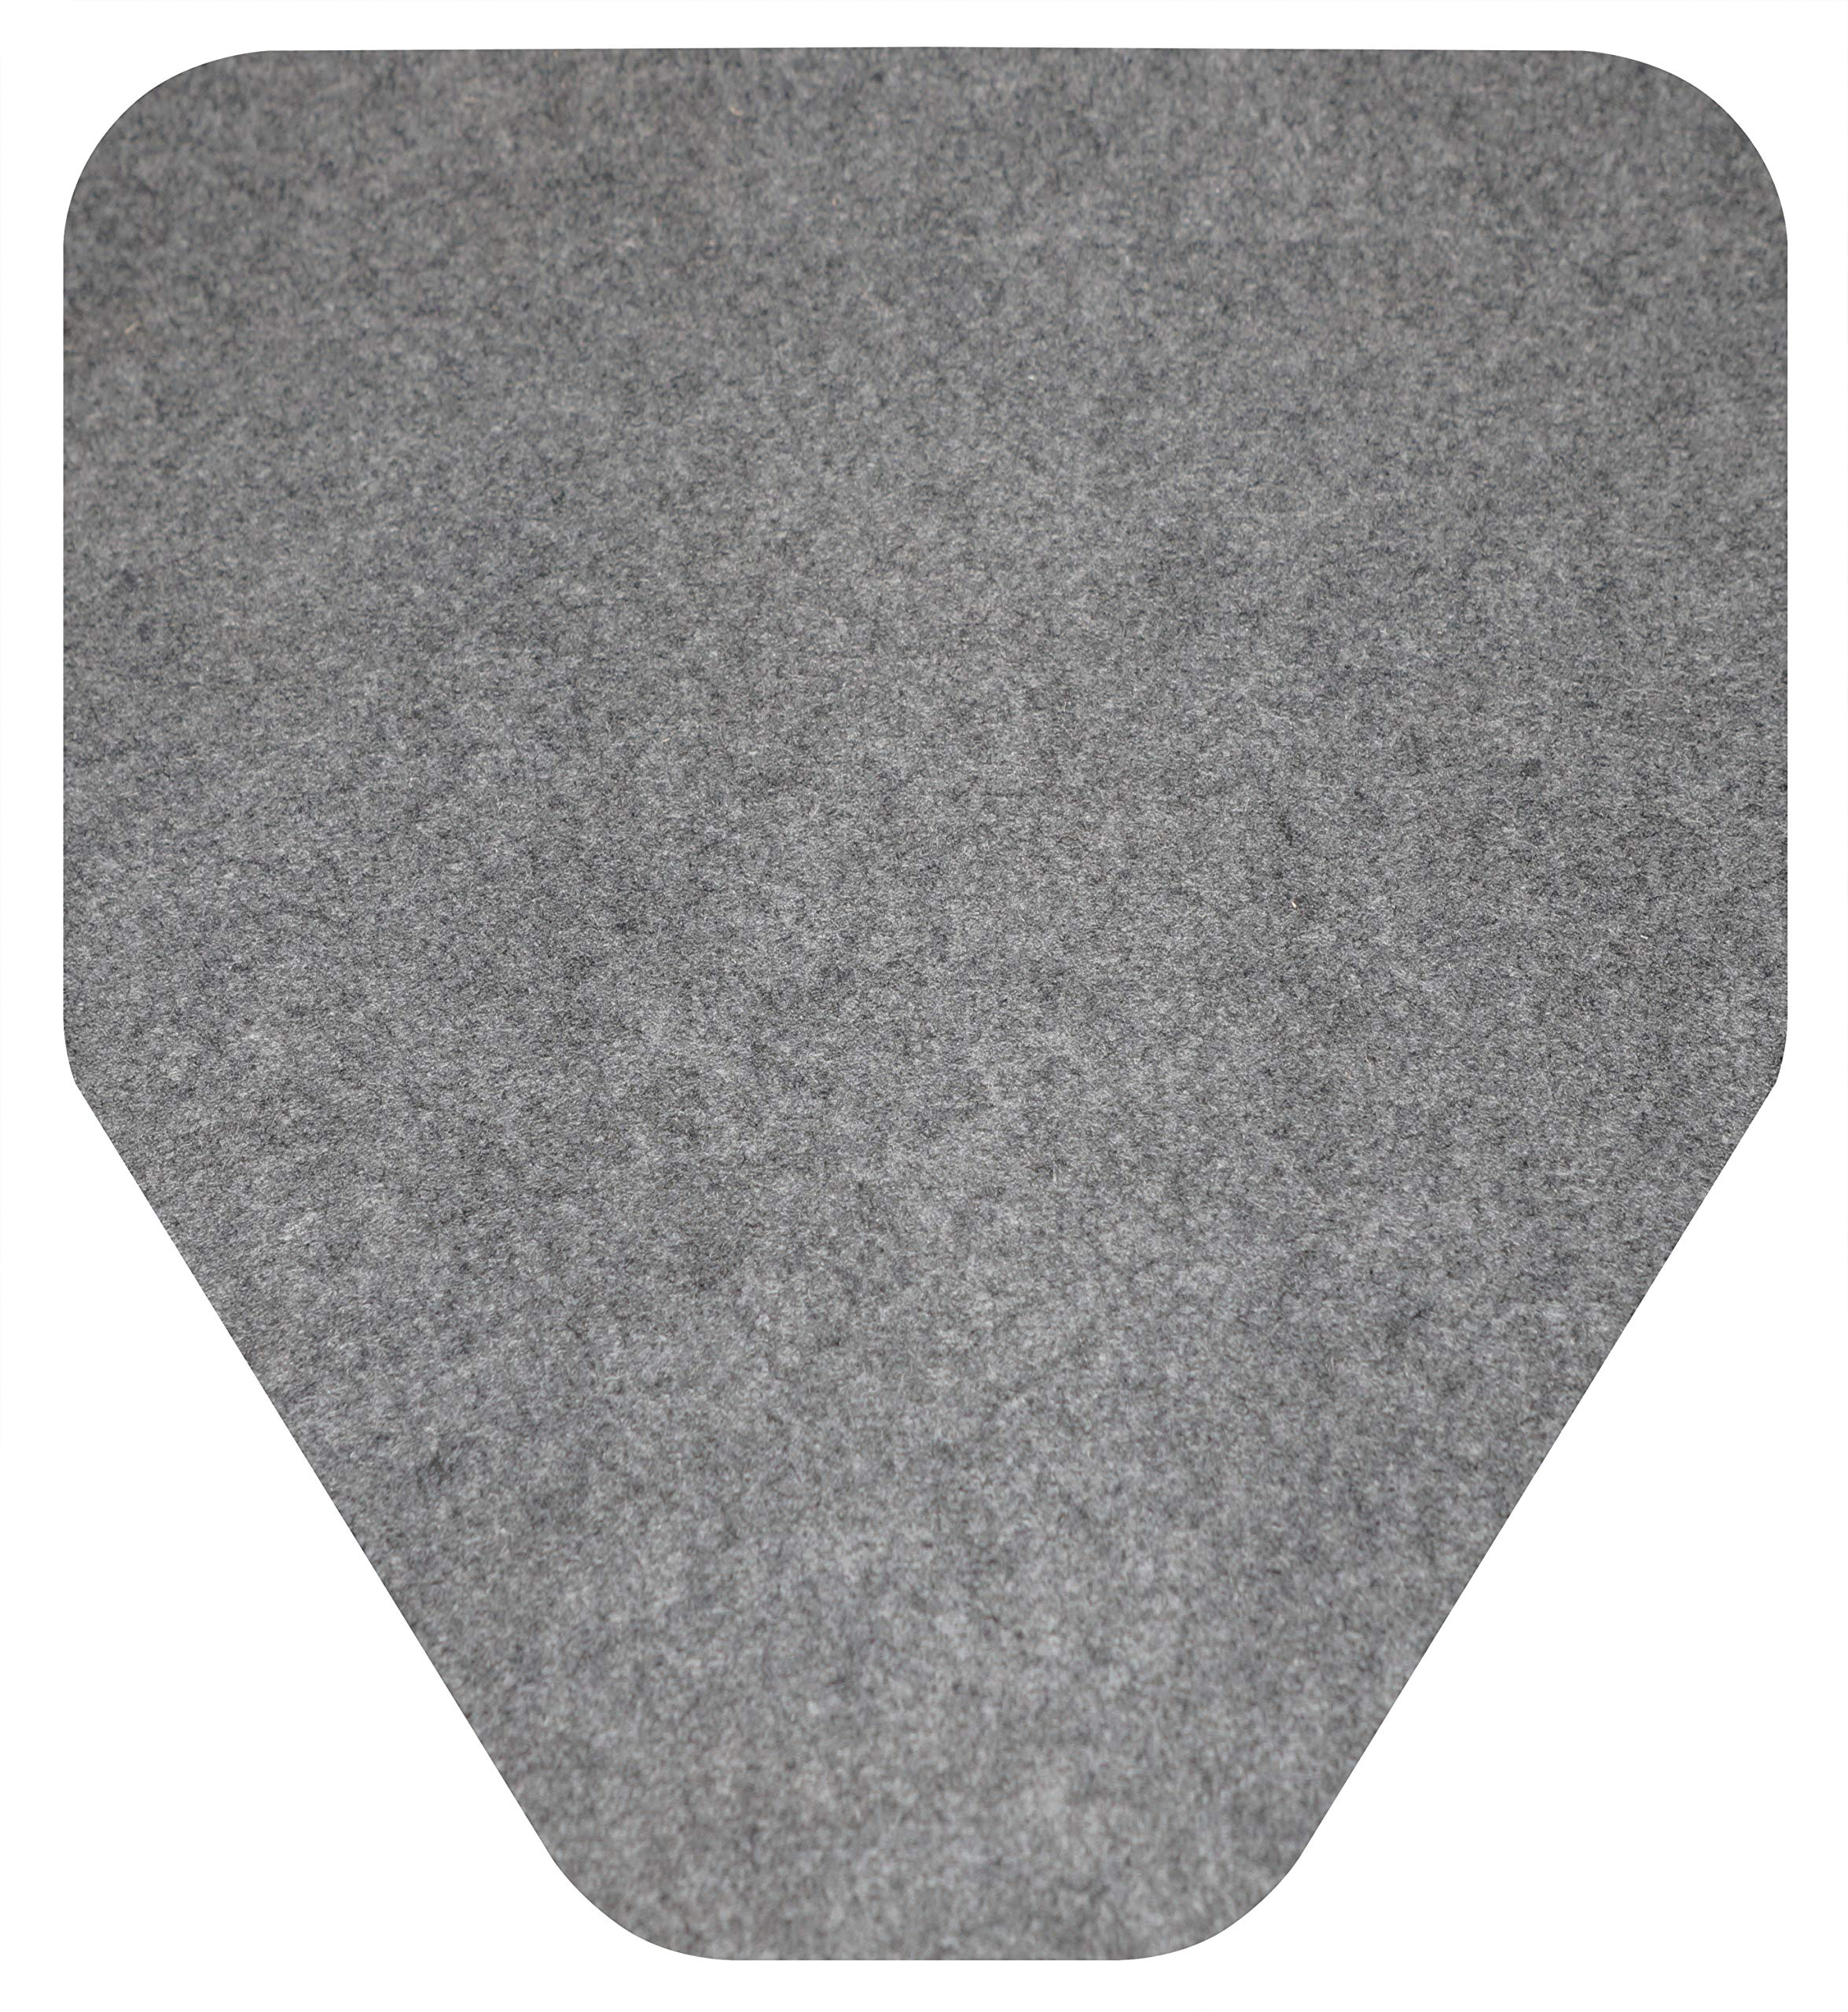 Big D 6669 D-Sorb Urinal Mat, Disposable, Protects Restroom Floor (Pack of 6) - Ideal for restrooms in Offices, Schools, Restaurants, Hotels, Stores